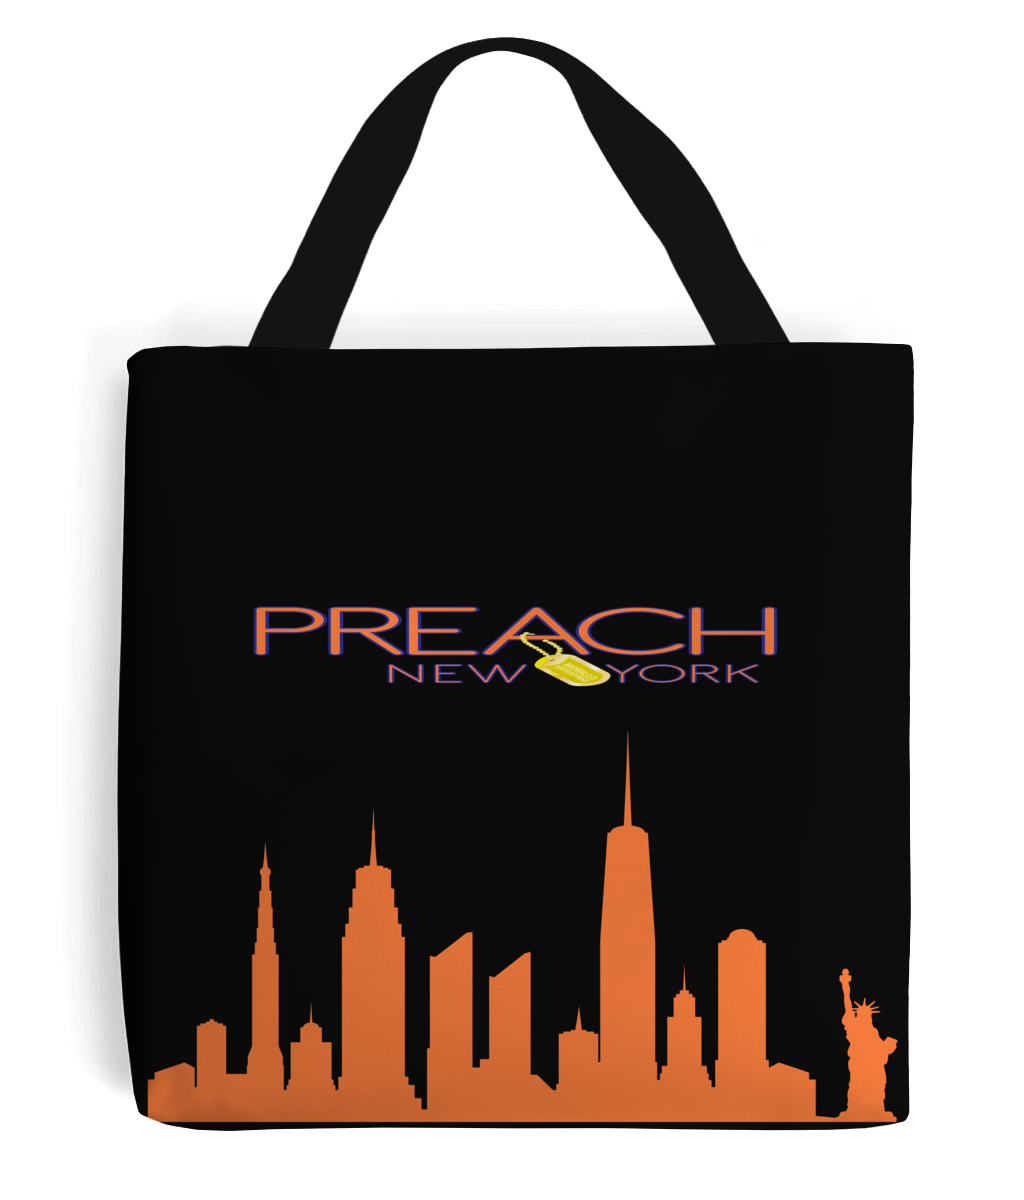 PREACH NYC SKYLINE CANVAS TOTE BAG Homeware, Accessories - MORILLO ENTERPRISE